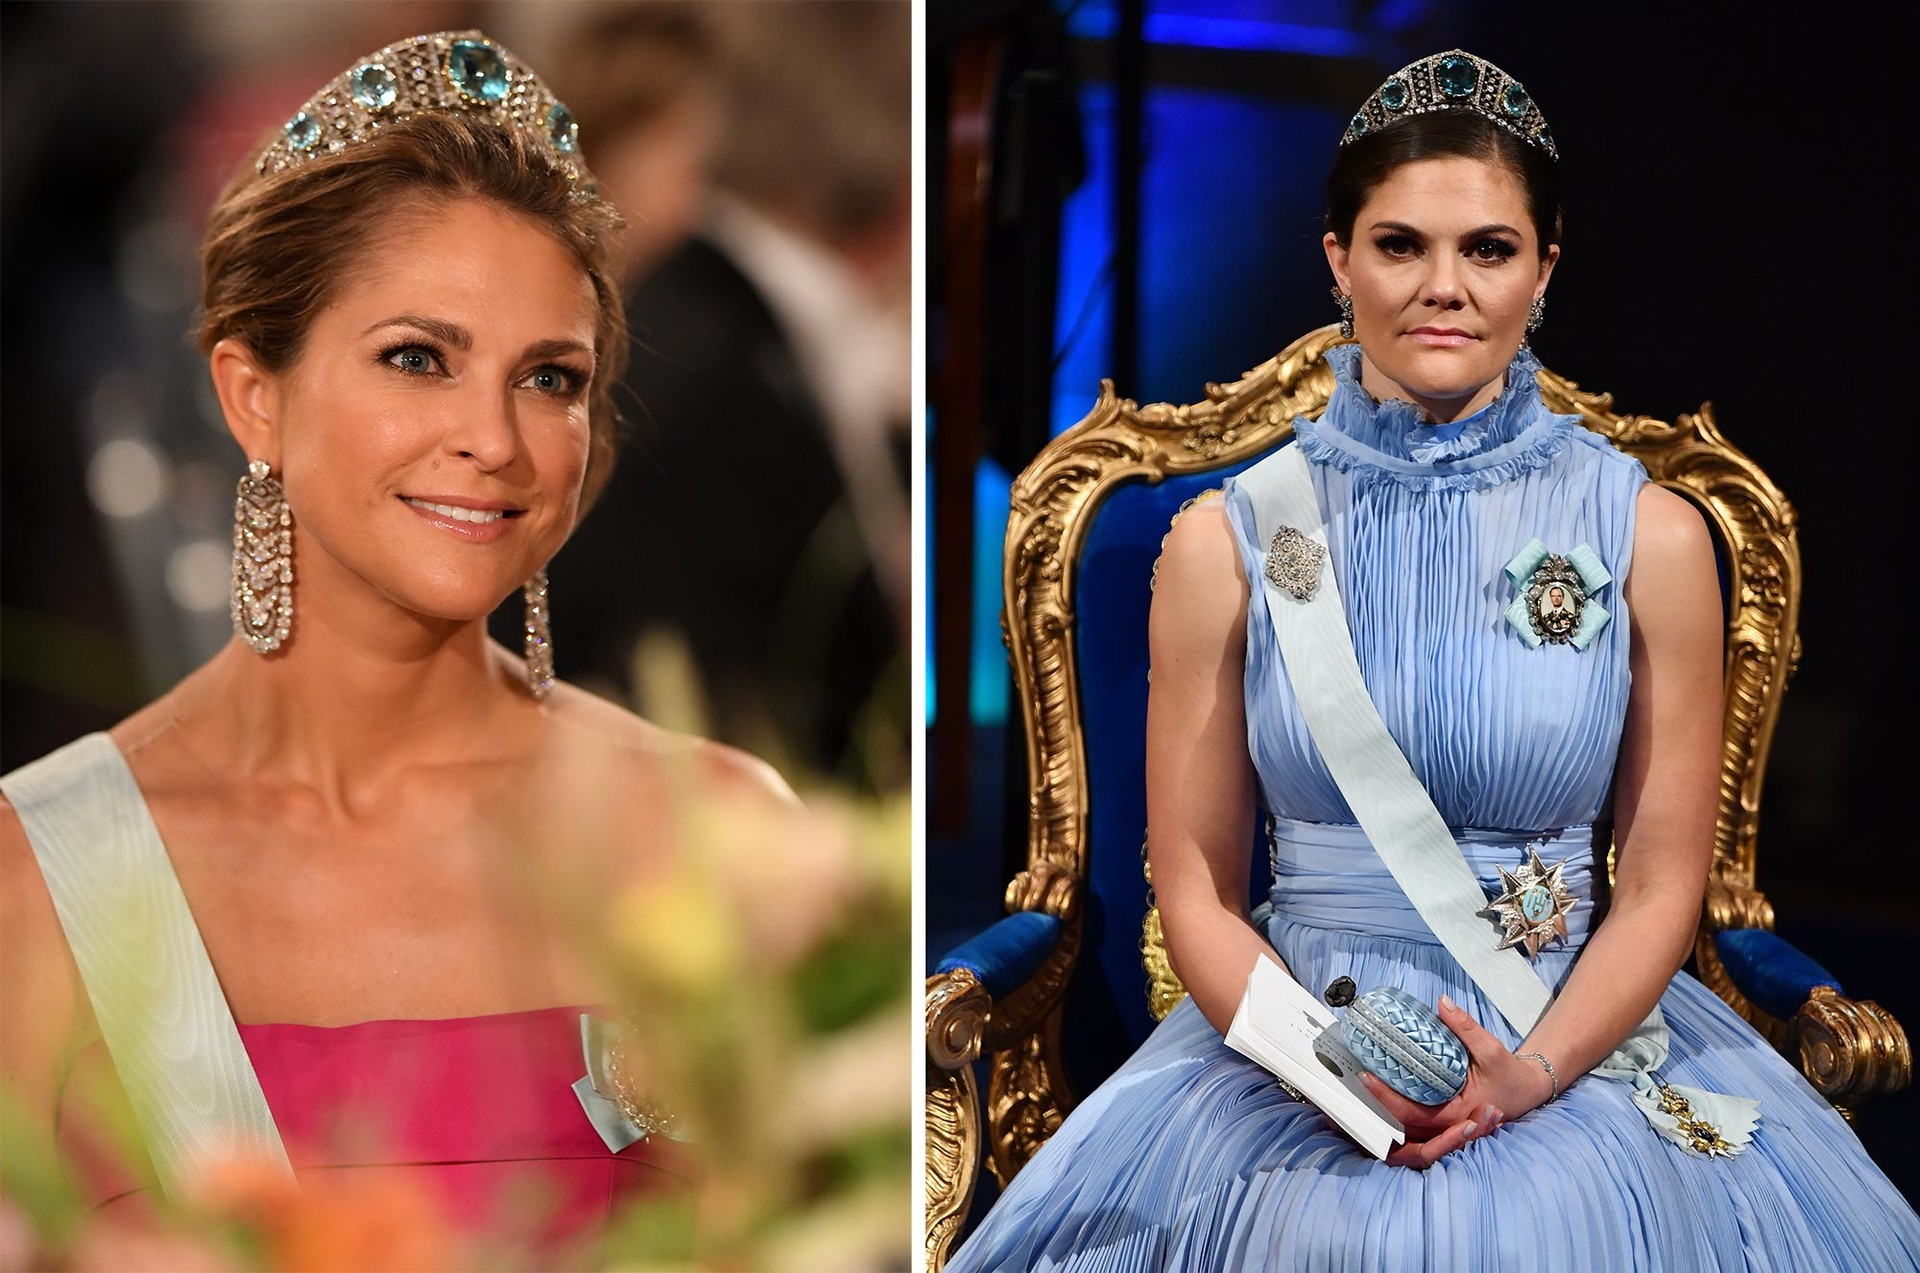 Princess Madeleine attends the Nobel Prize Banquet on December 10, 2019 in Stockholm; Princess Victoria attends the Nobel Prize Awards Ceremony on December 10, 2017 in Stockholm.